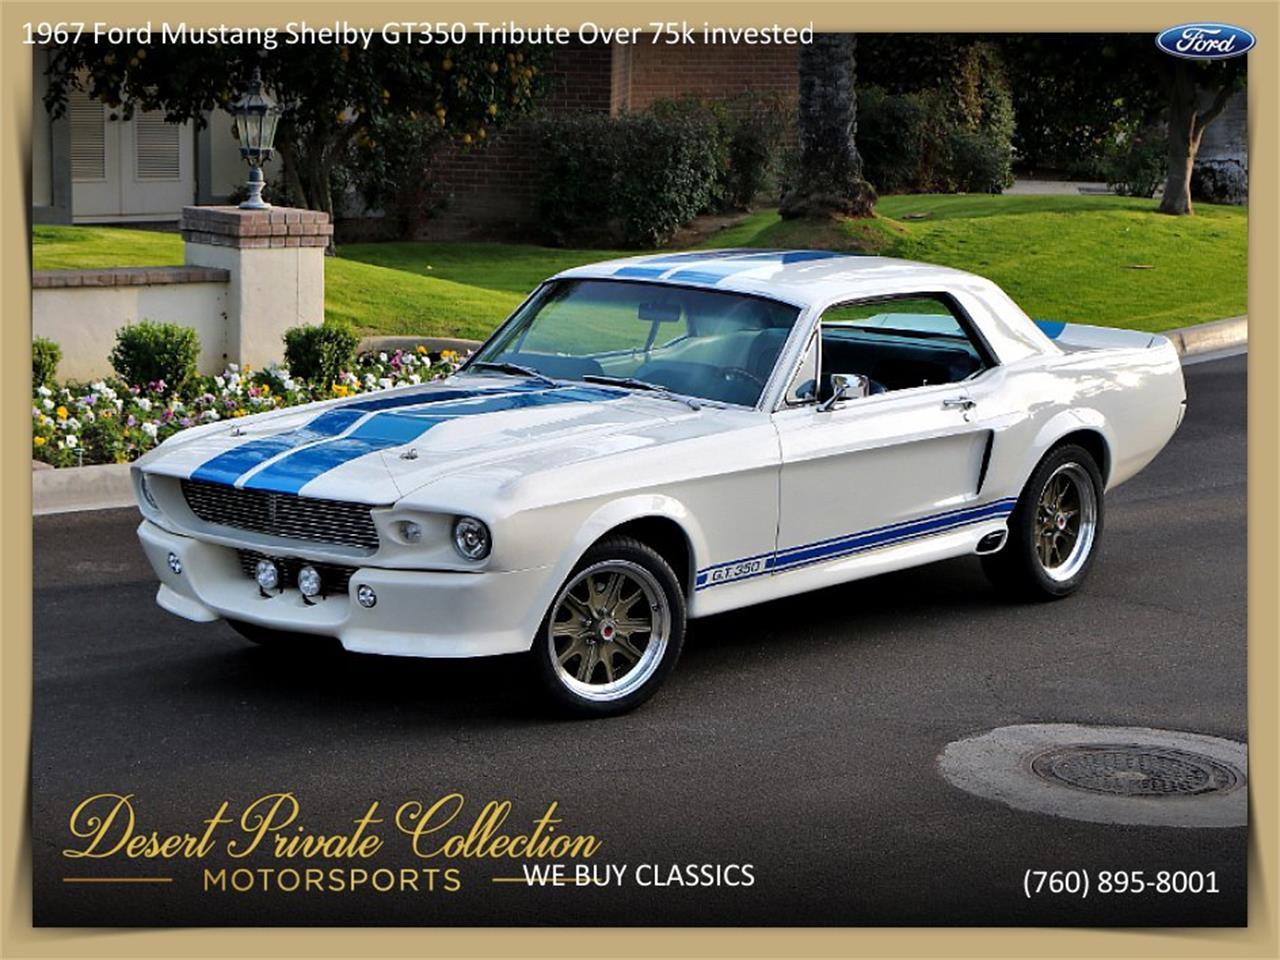 Large picture of 1967 ford mustang shelby gt350 47750 00 pfeq